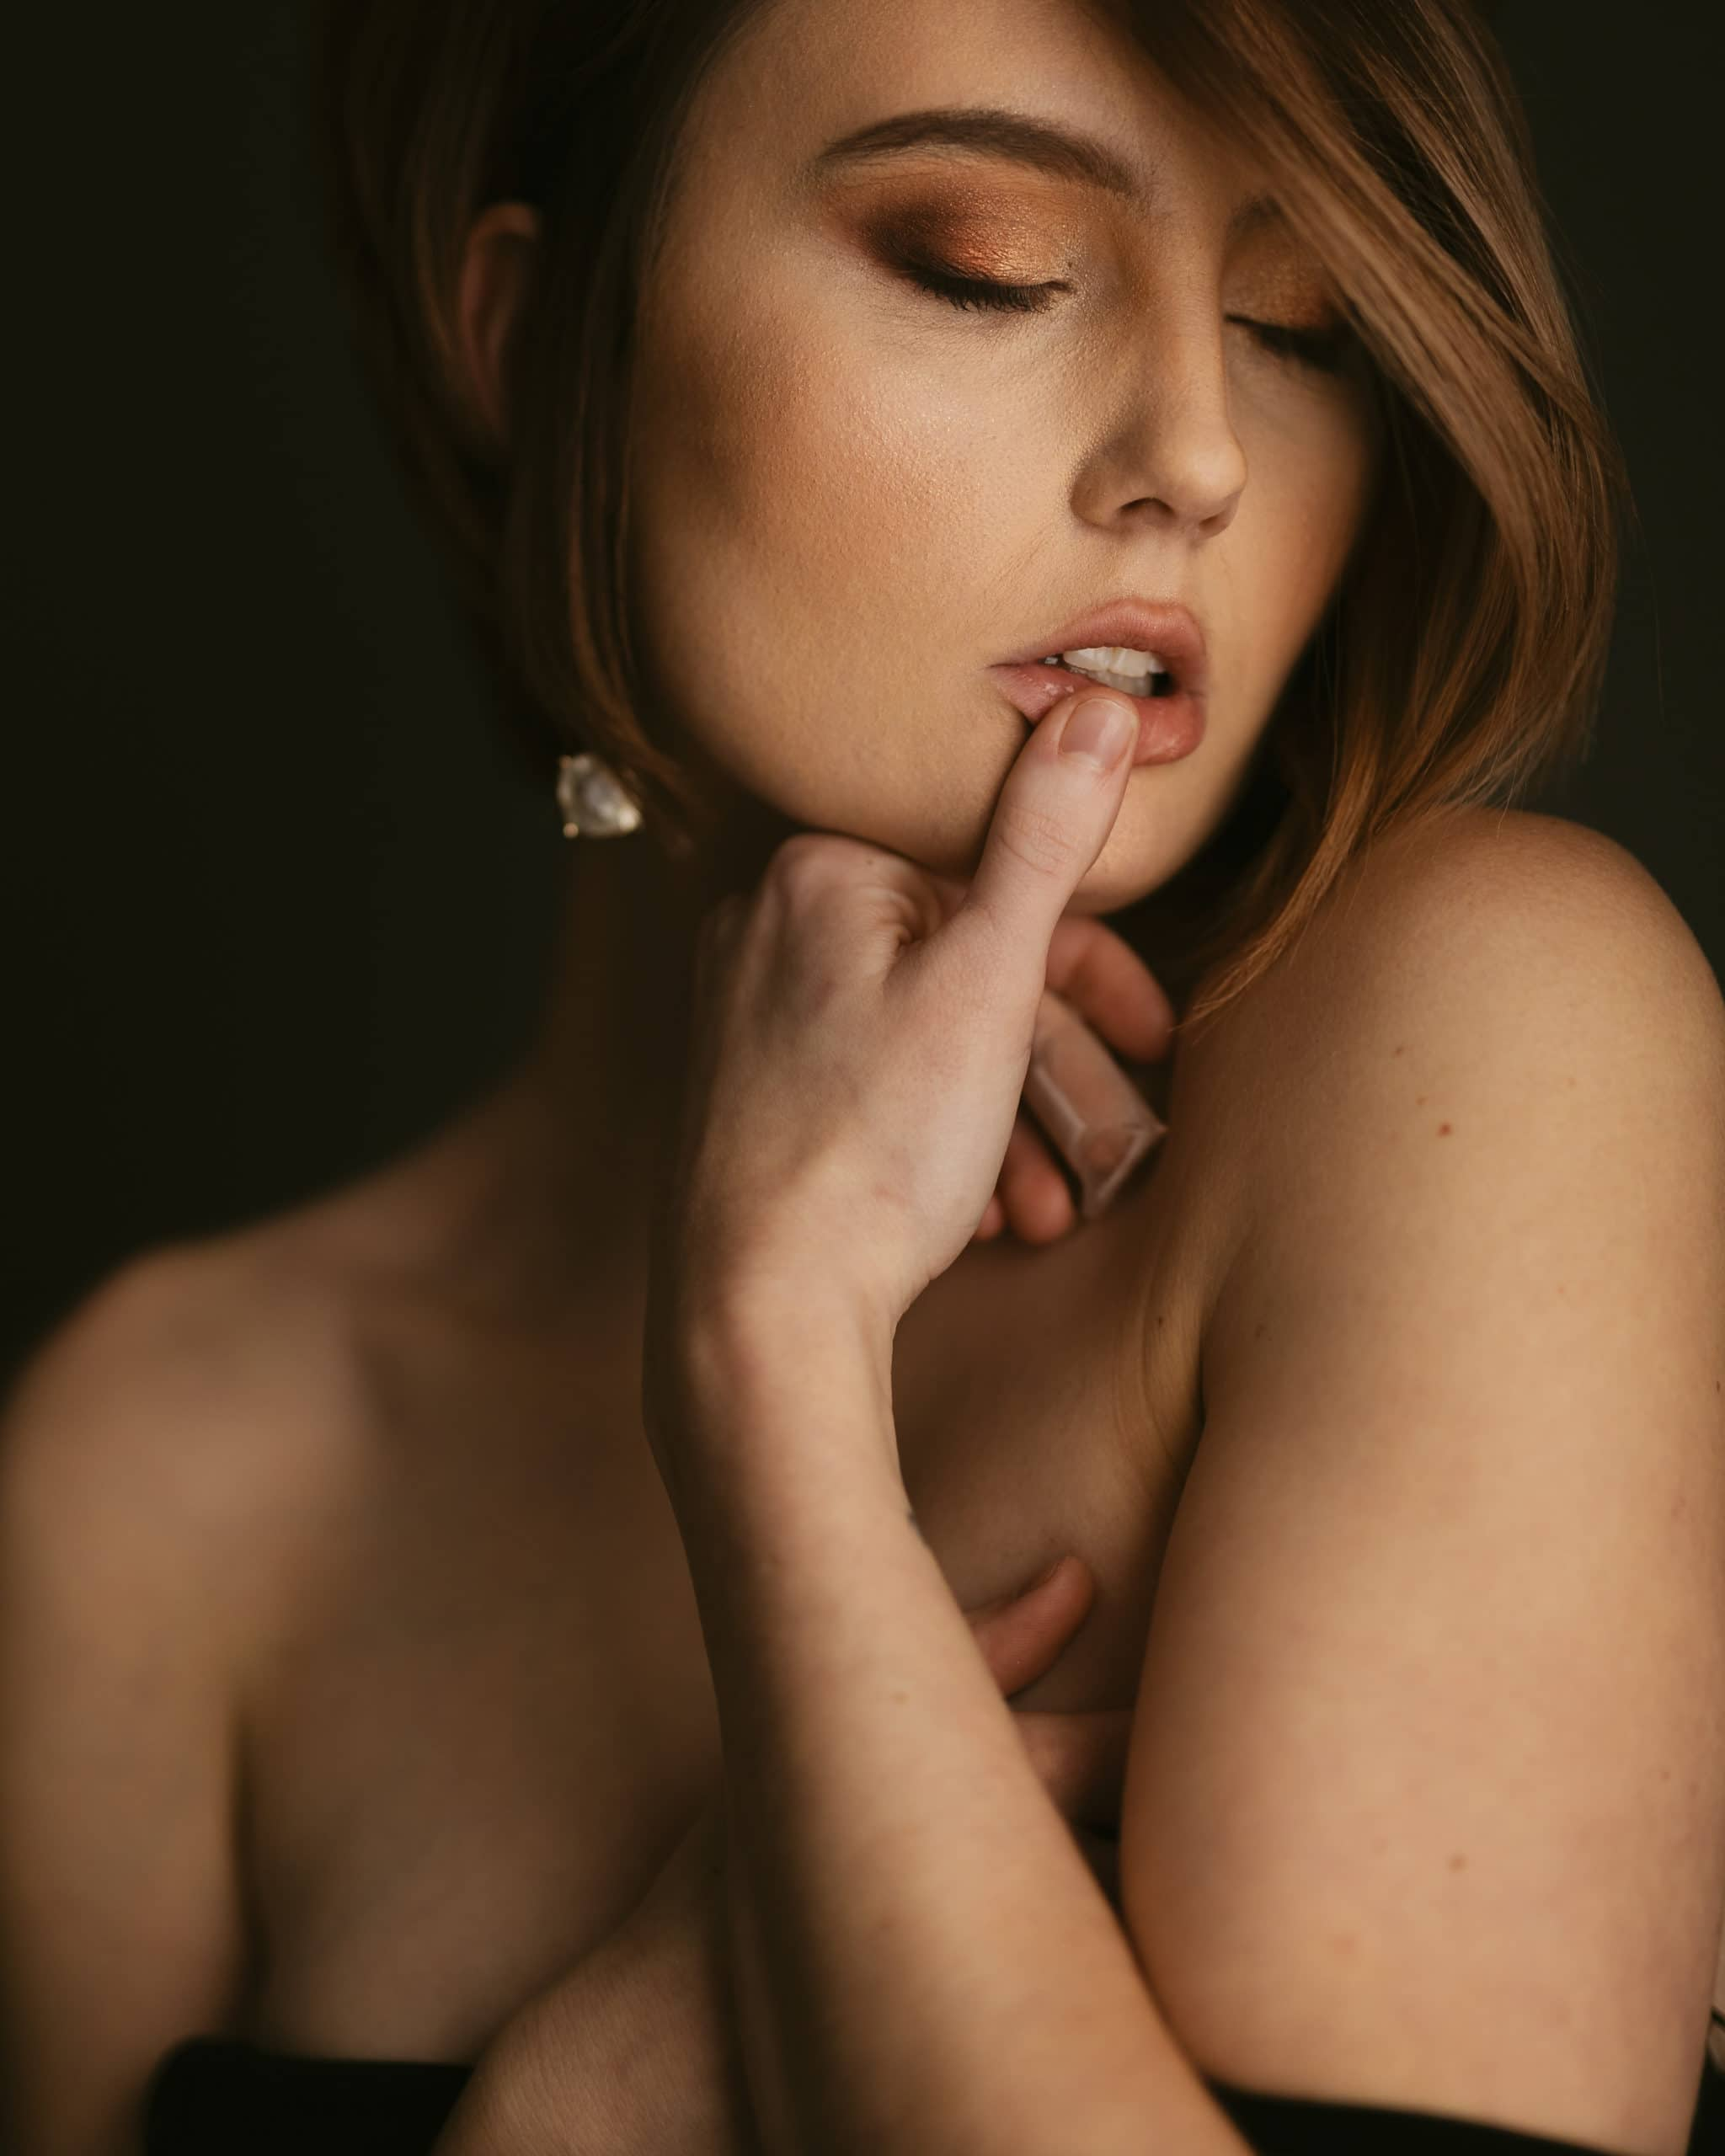 Woman with finger on her lip